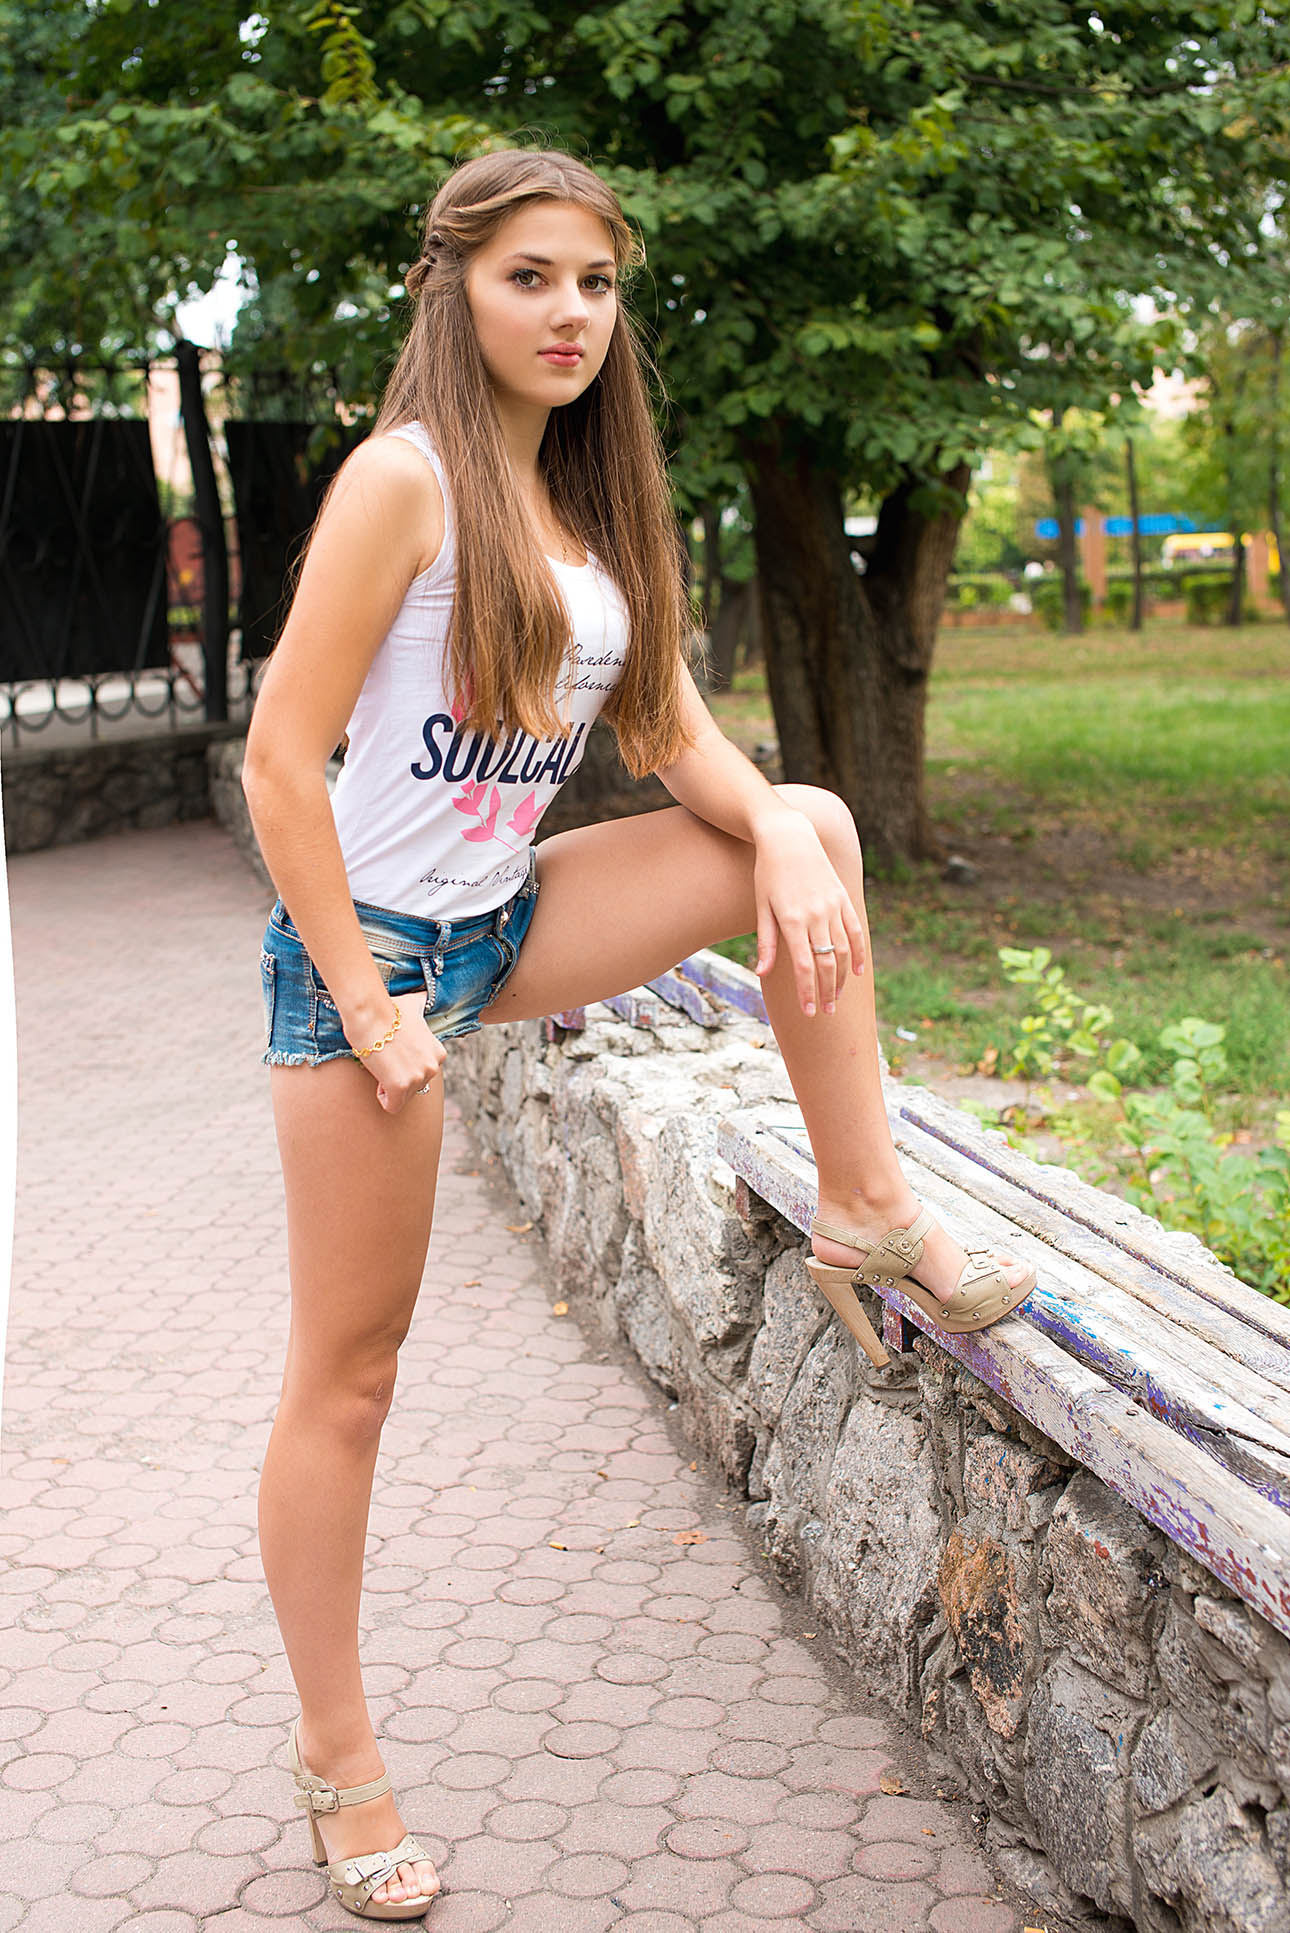 Marriage Agencies Ukraine Russia Date 42